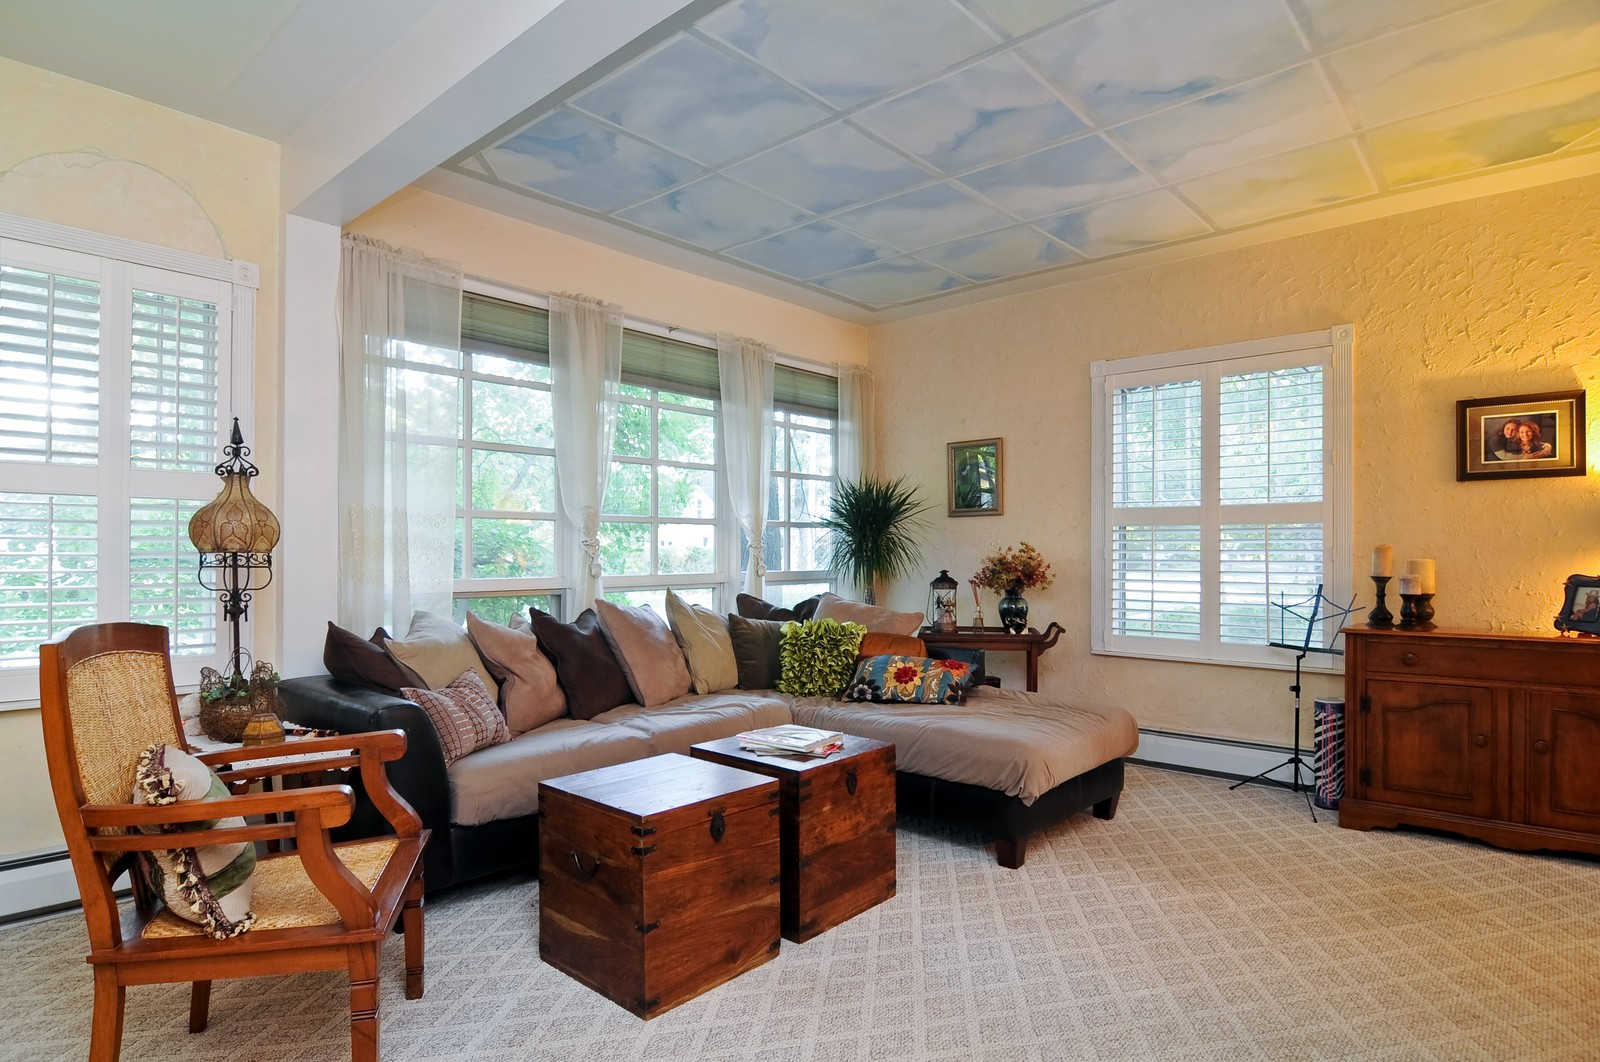 Real Estate Photography - 158 S. Lake, Grayslake, IL, 60030 - Living Room